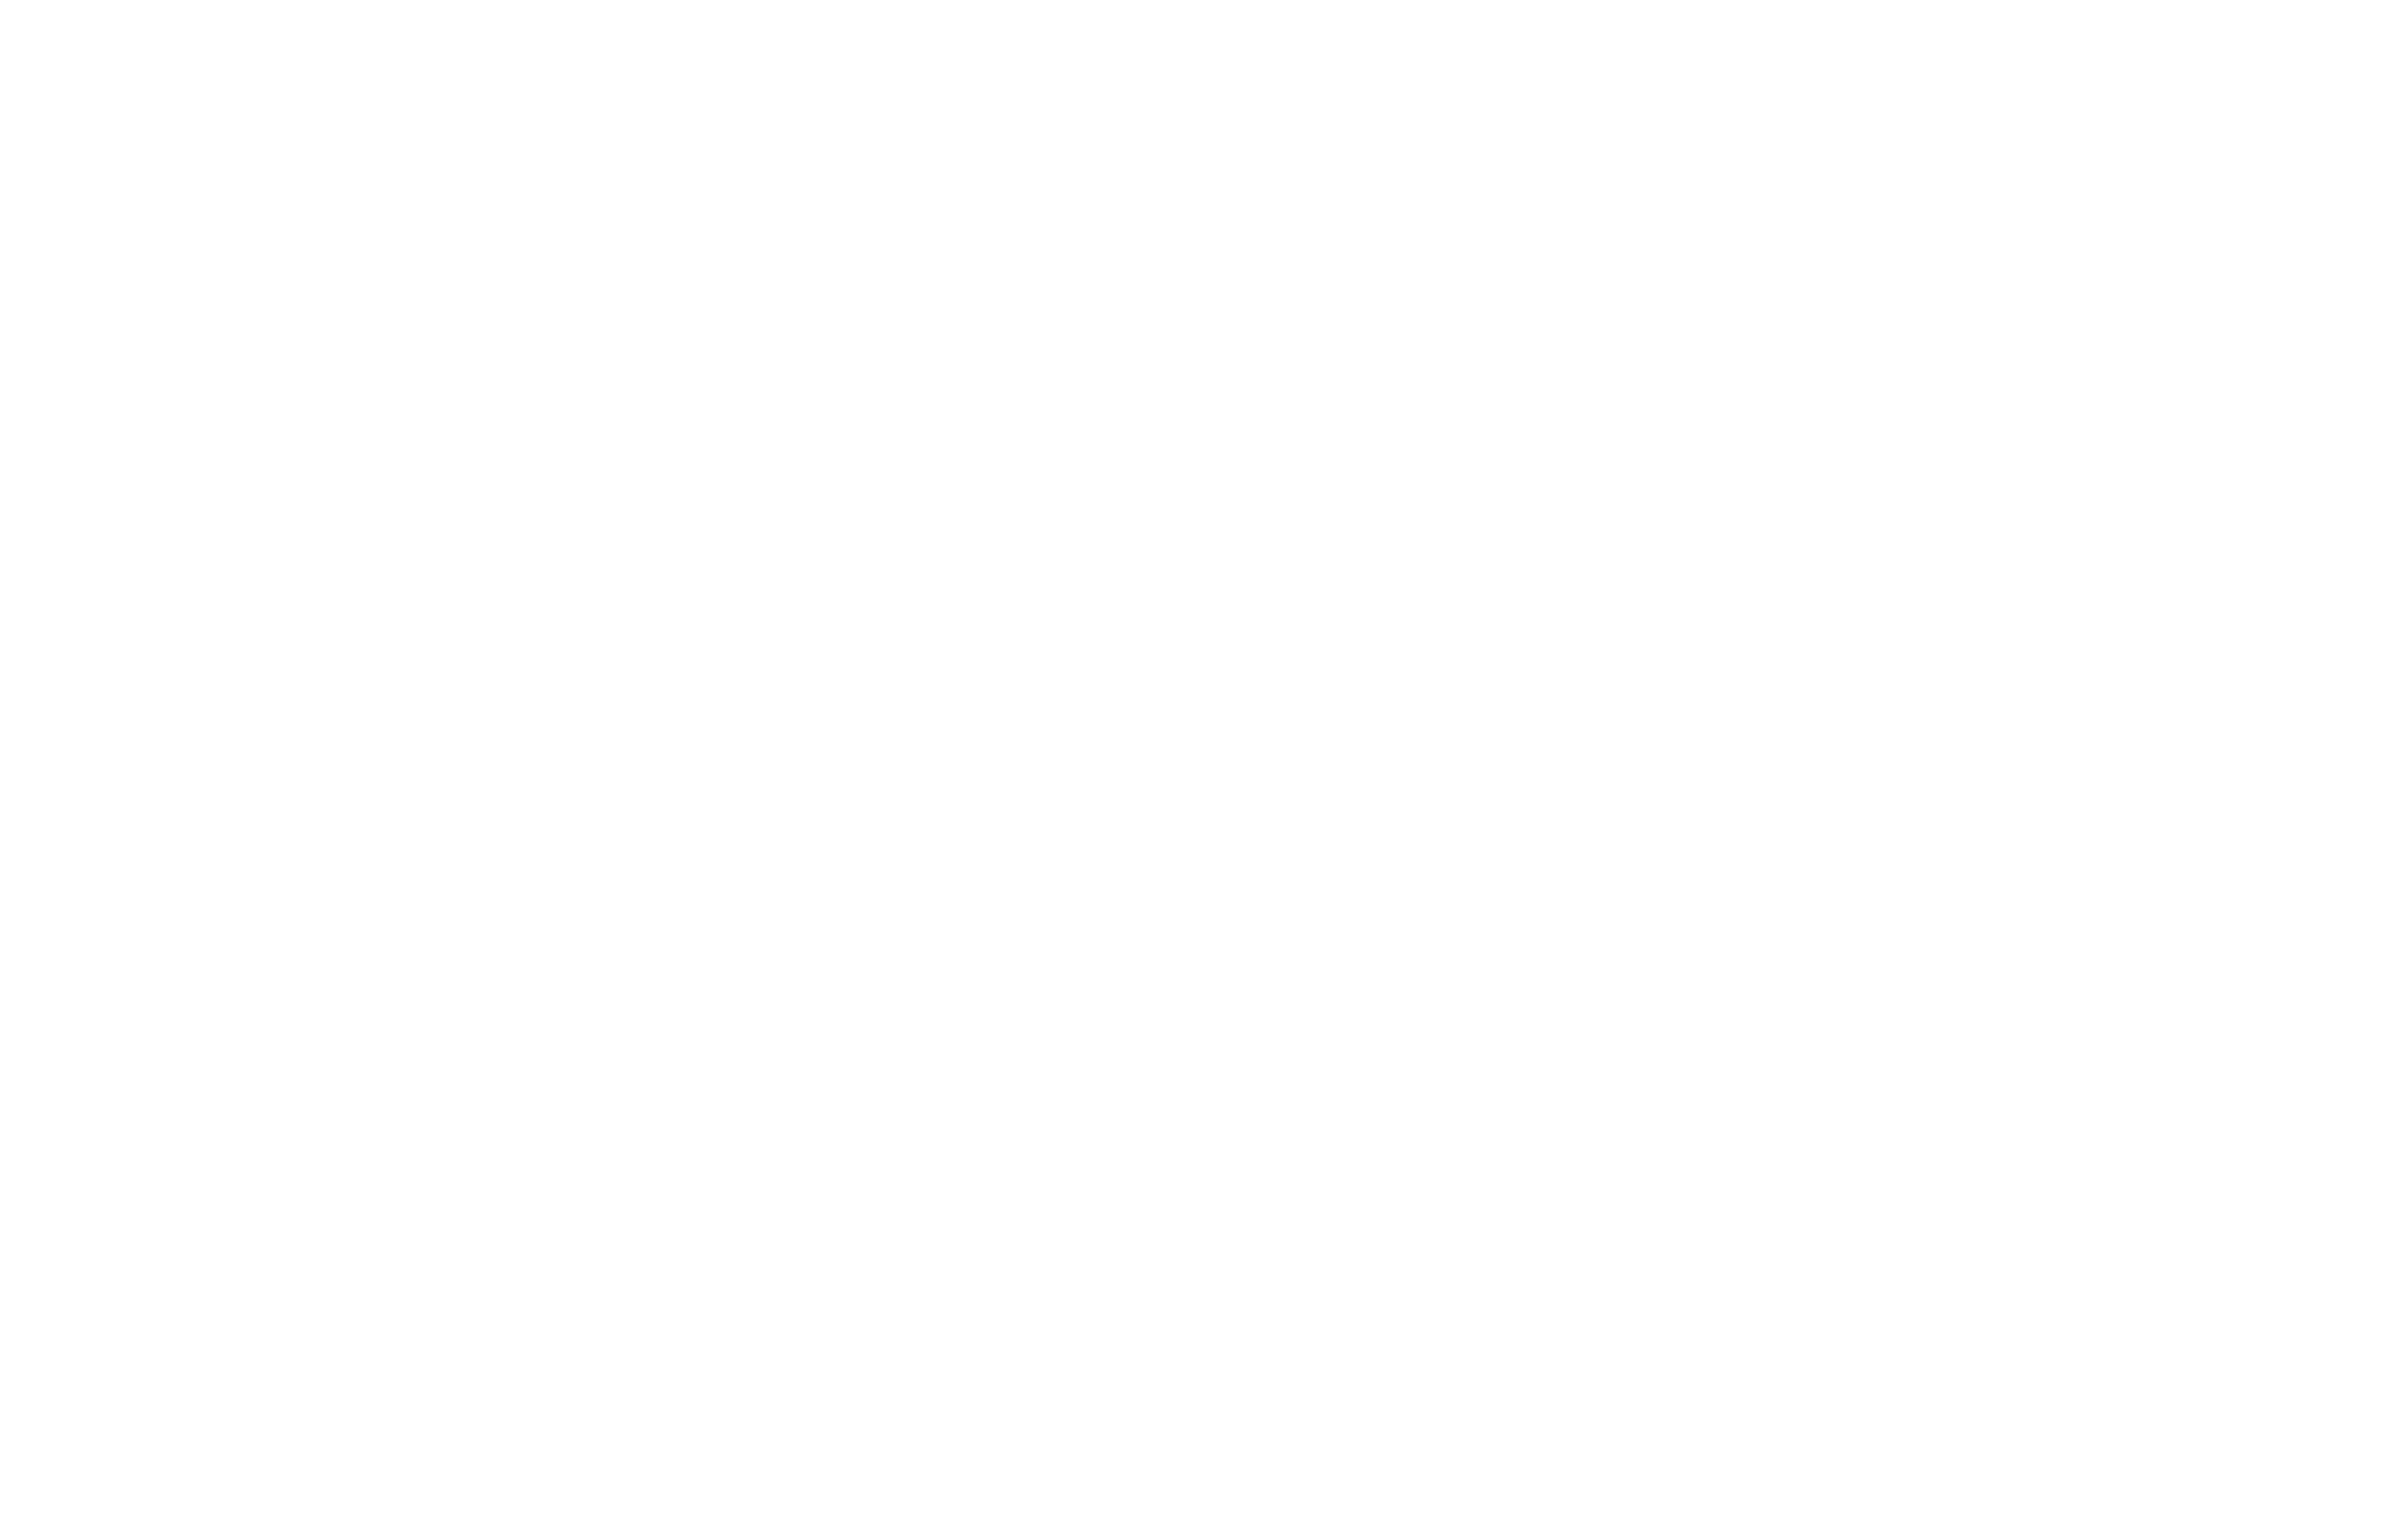 go beyond covid-19